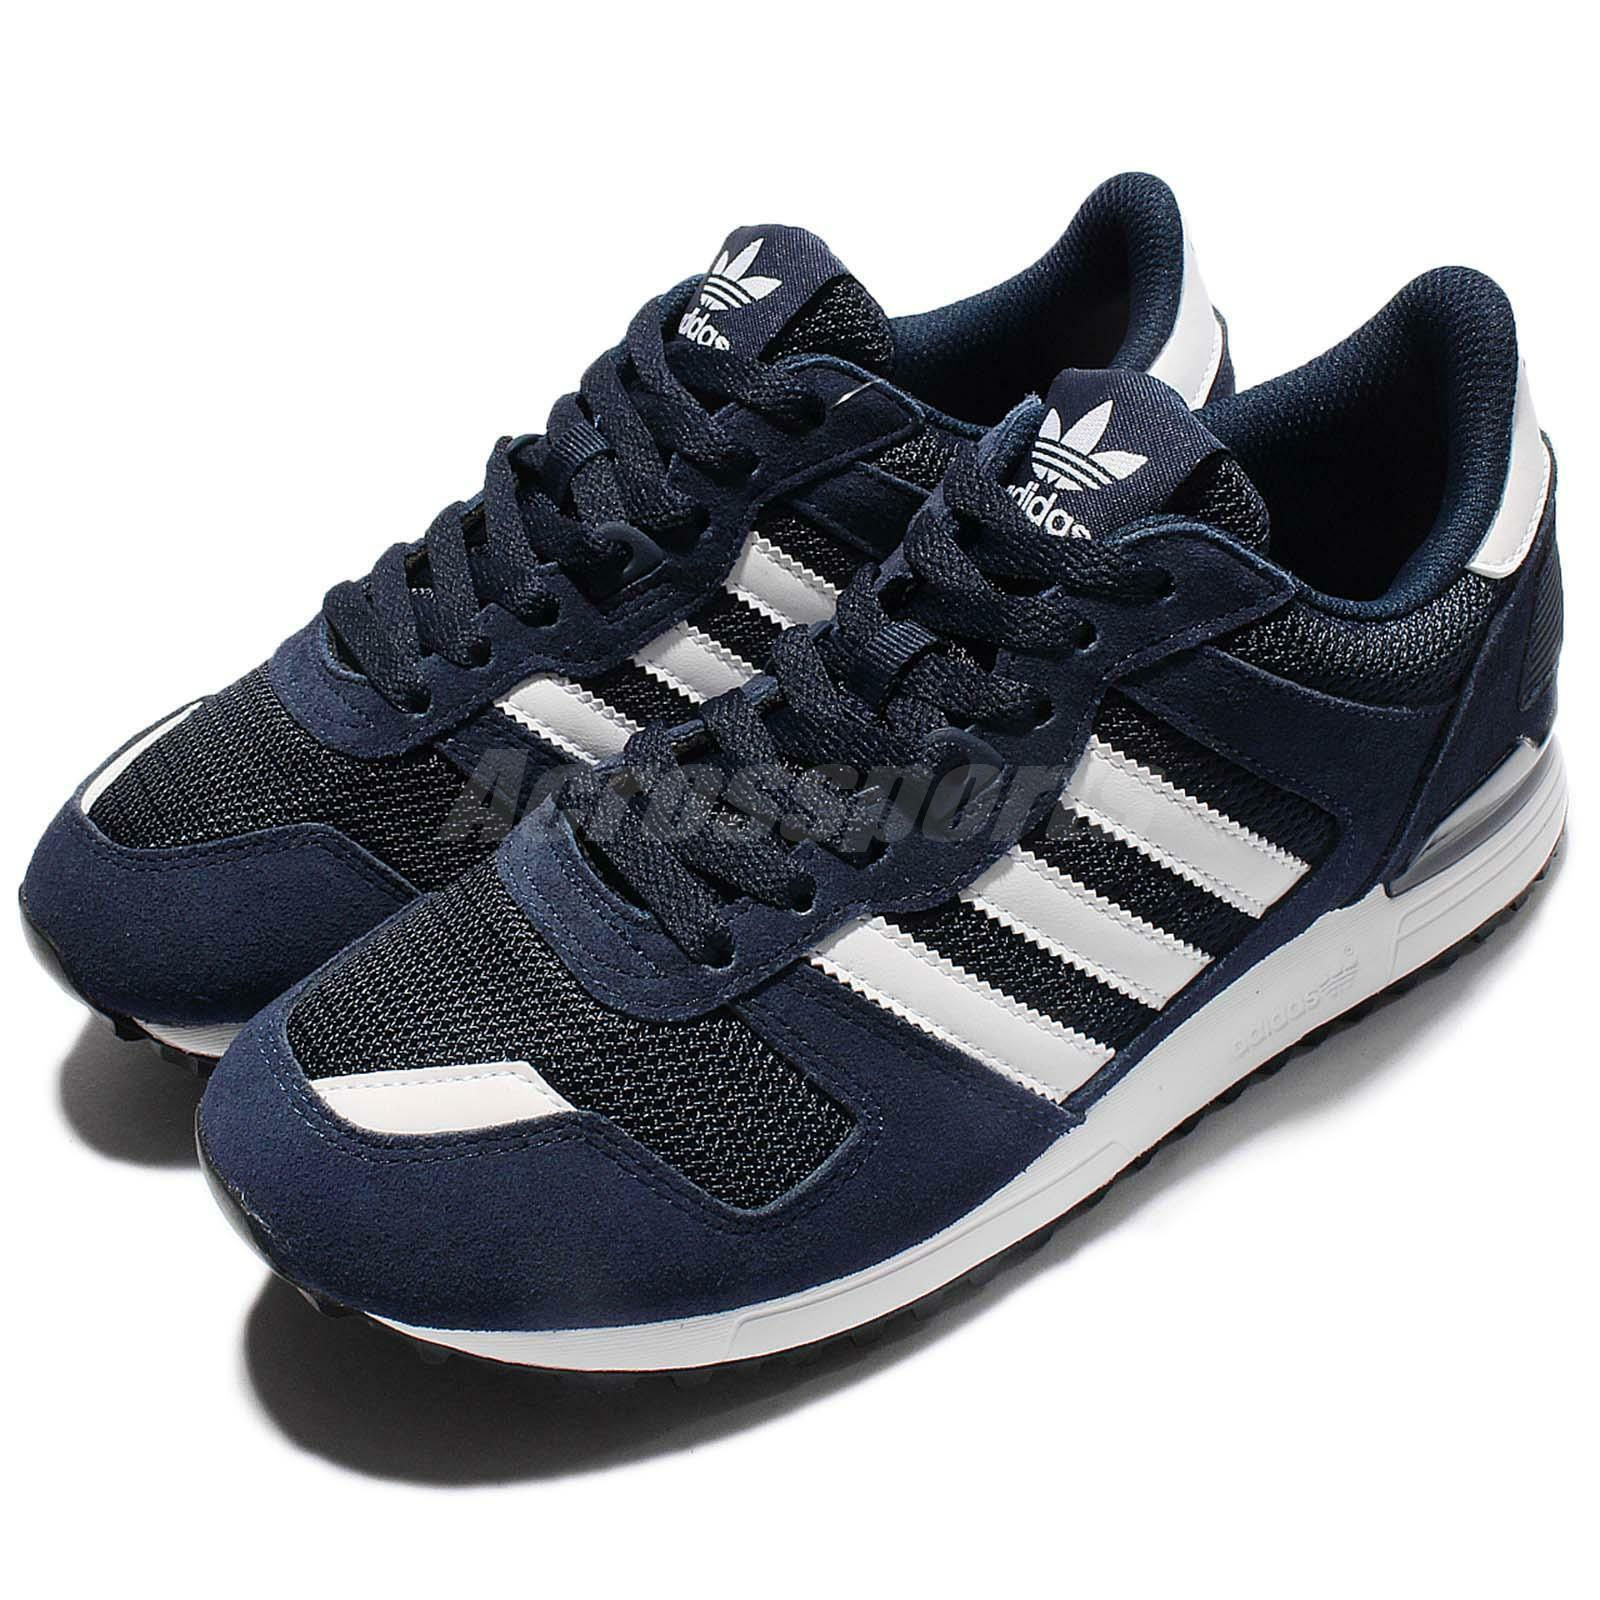 0ebfa8d84 low-cost adidas Originals ZX 700 Navy White Men Casual Shoes Sneakers  Trainers S76176